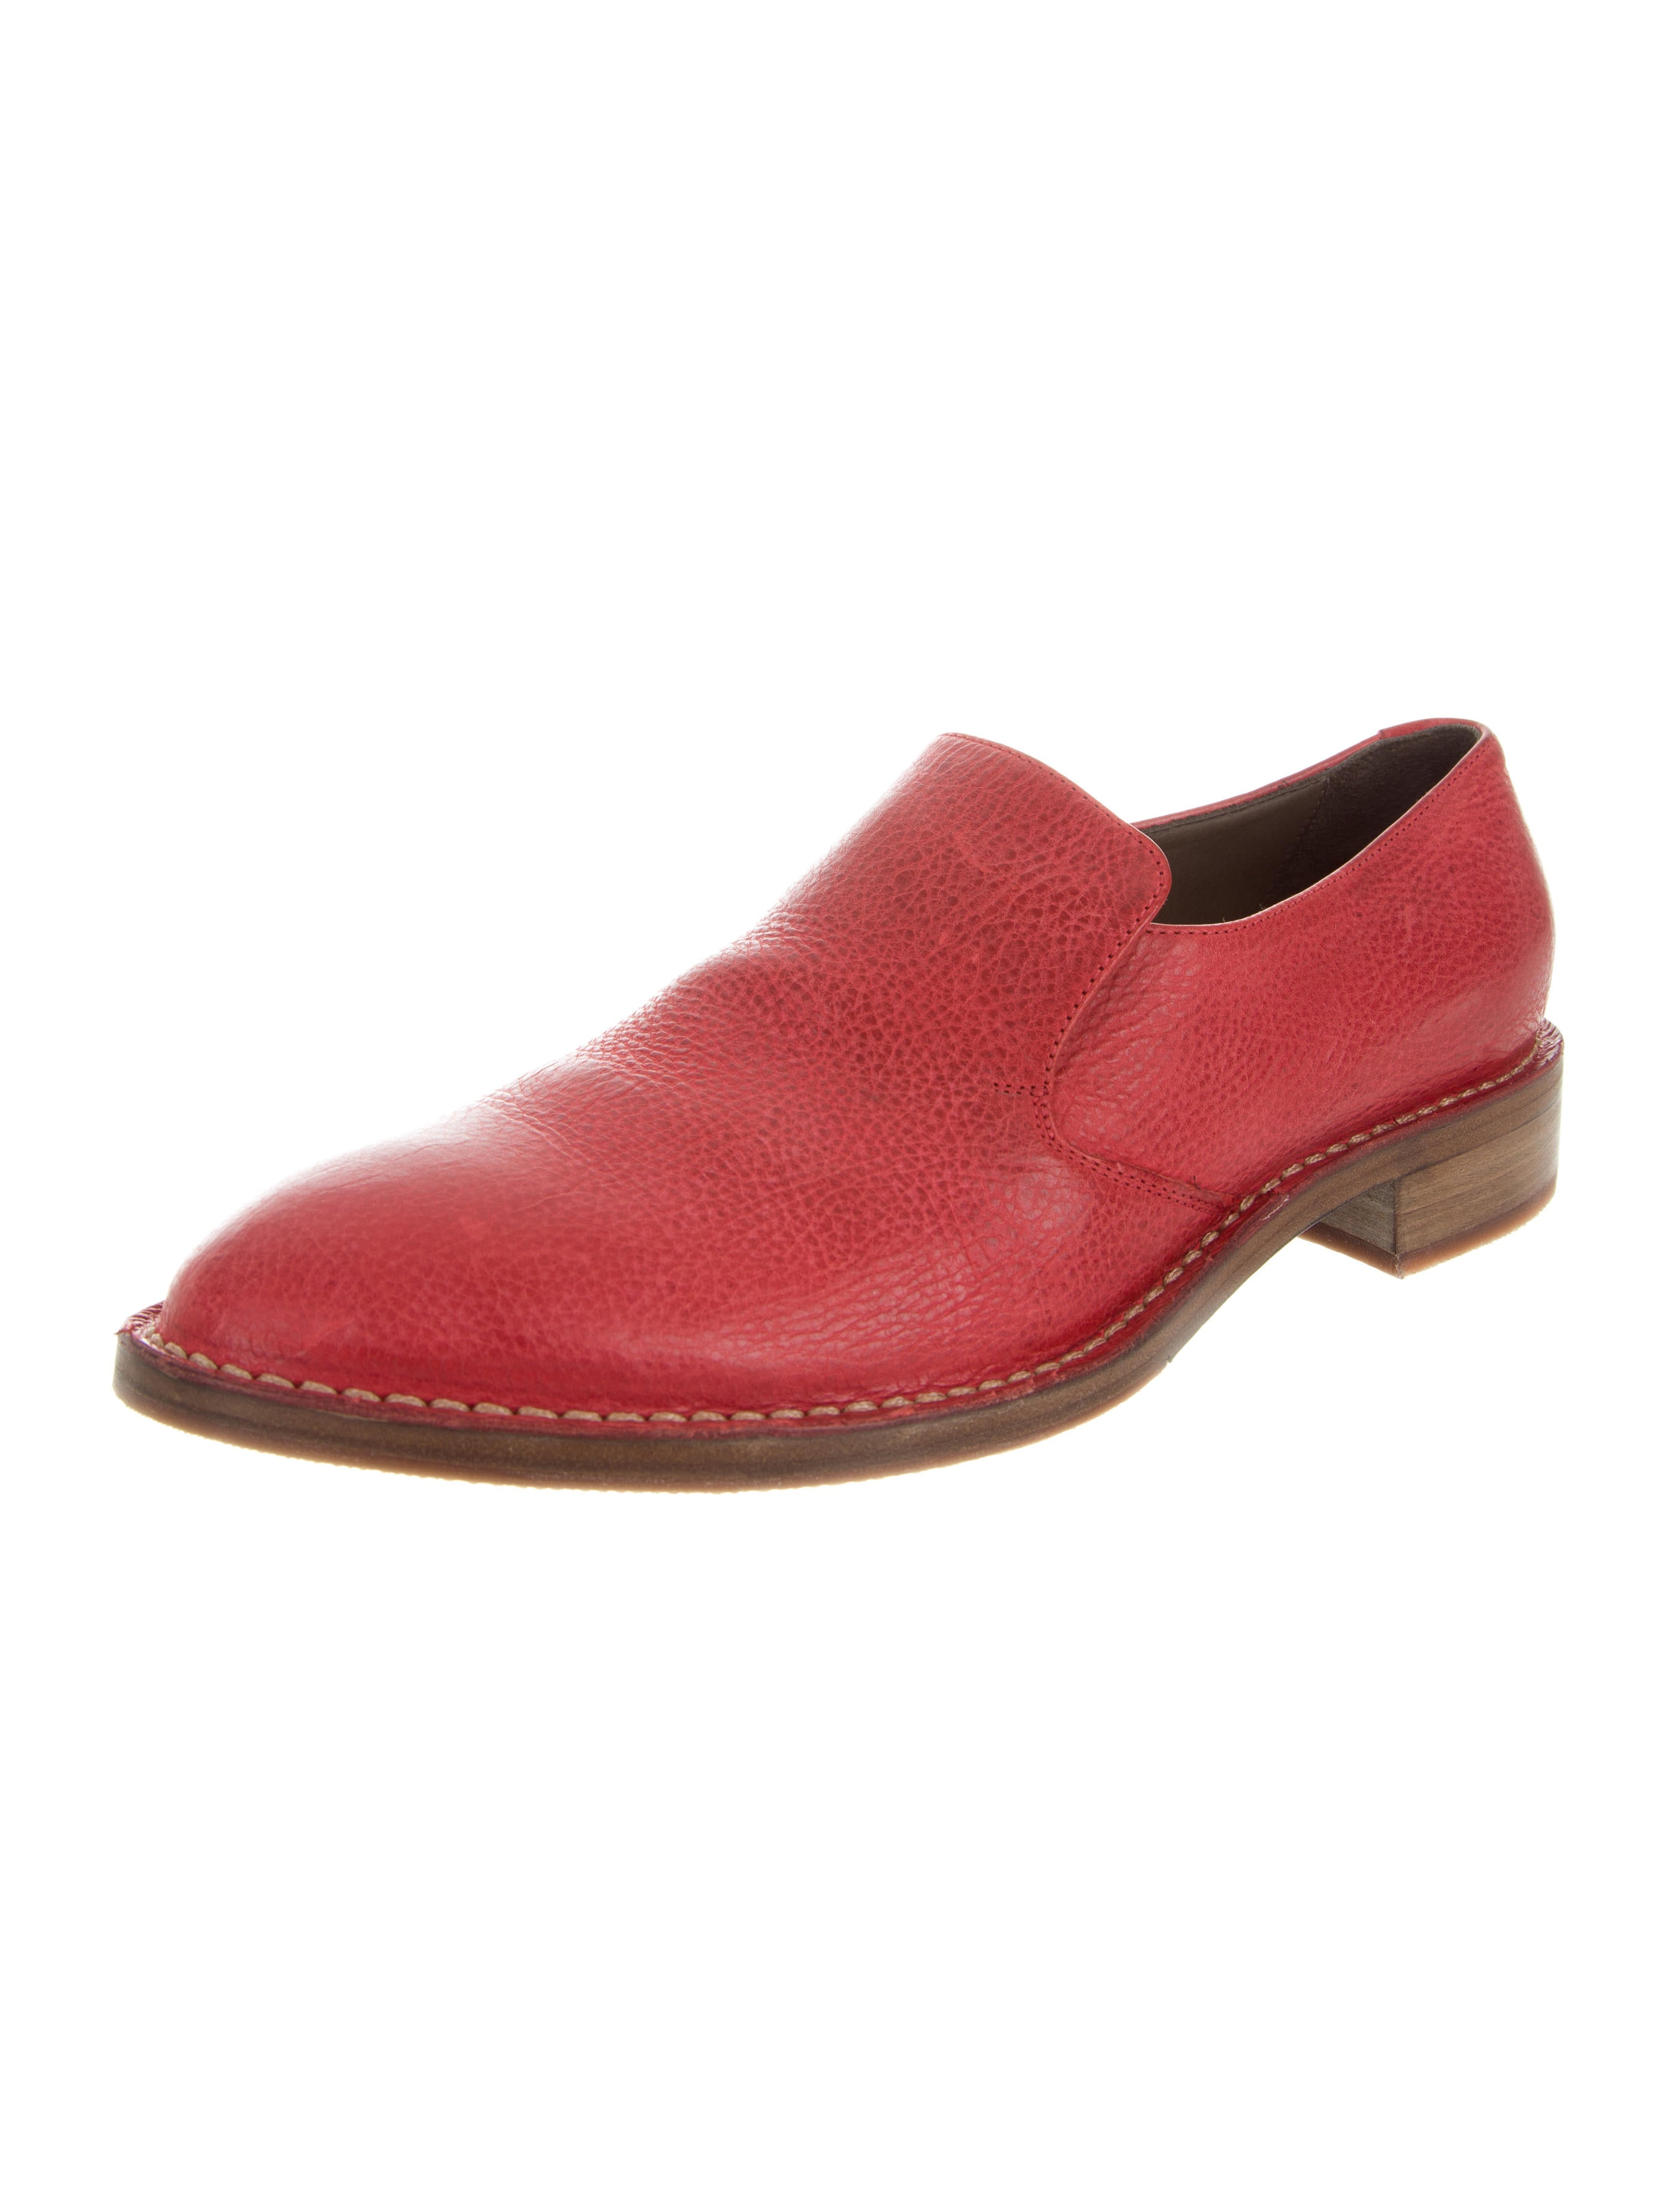 Brunello Cucinelli Leather Pointed-Toe Loafers w/ Tags eastbay sale online buy cheap websites discount shopping online q6R1S